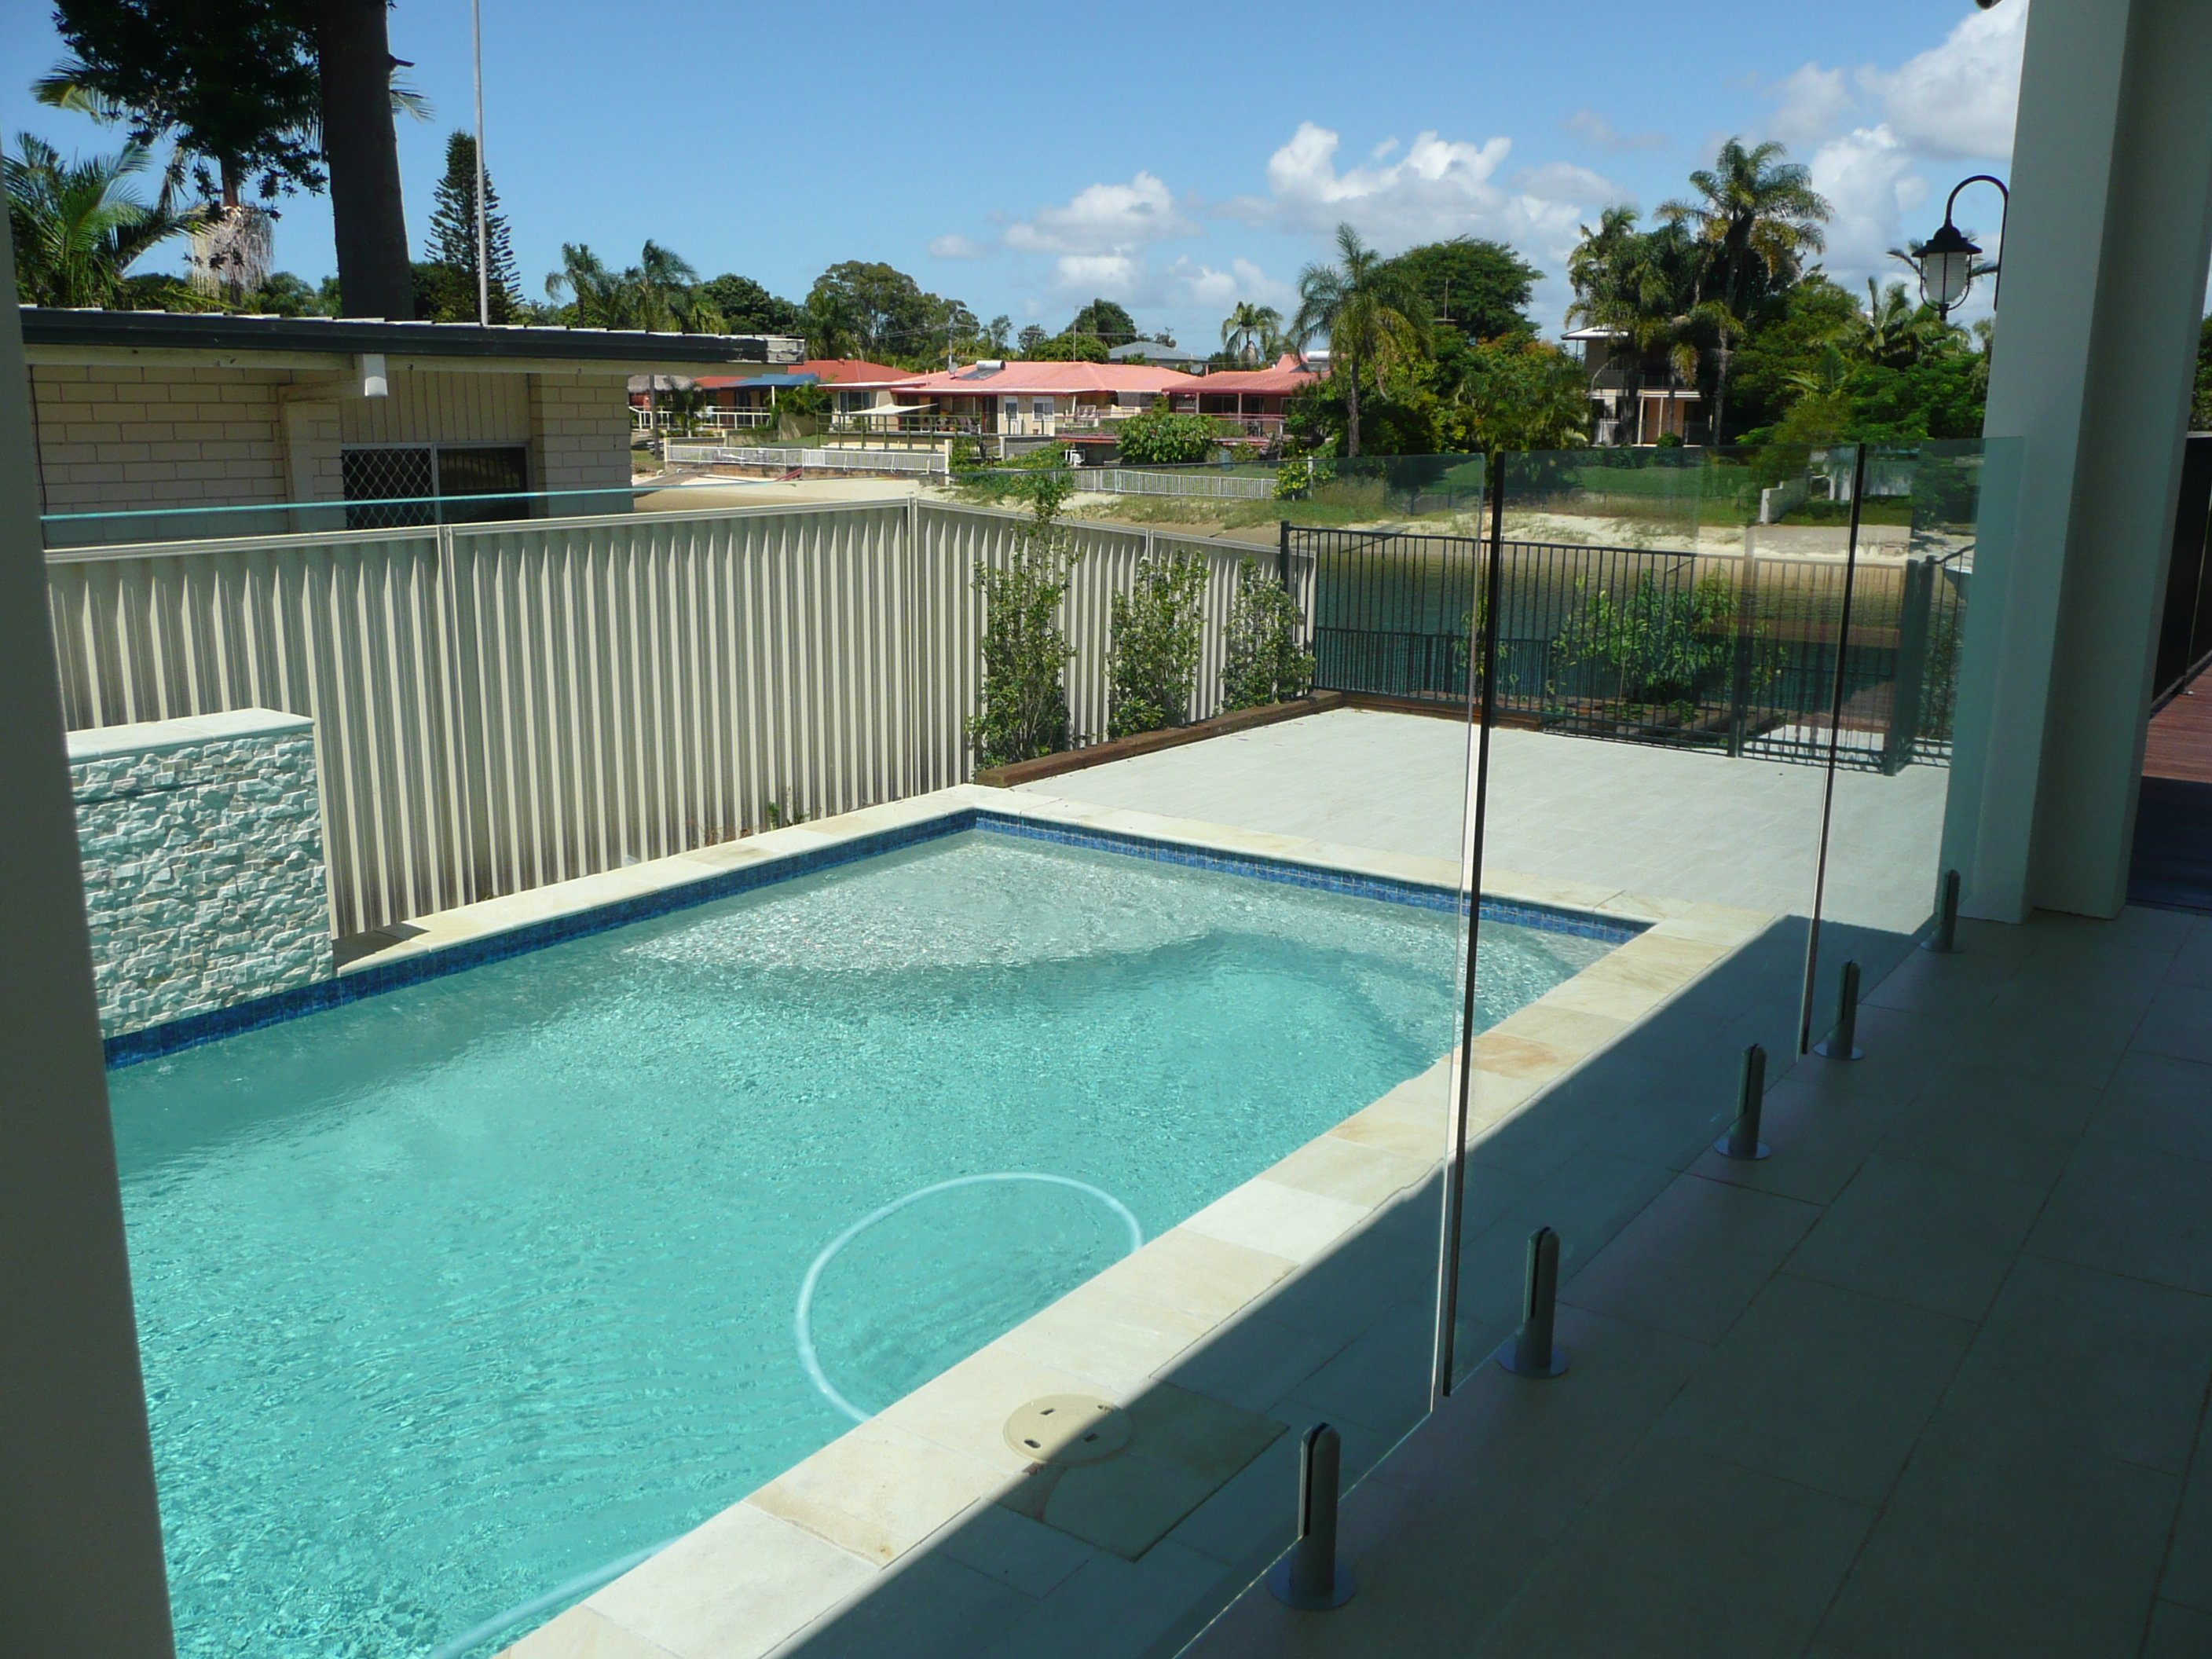 kelmac fencing and gates stylish glass fencing aroung a pool